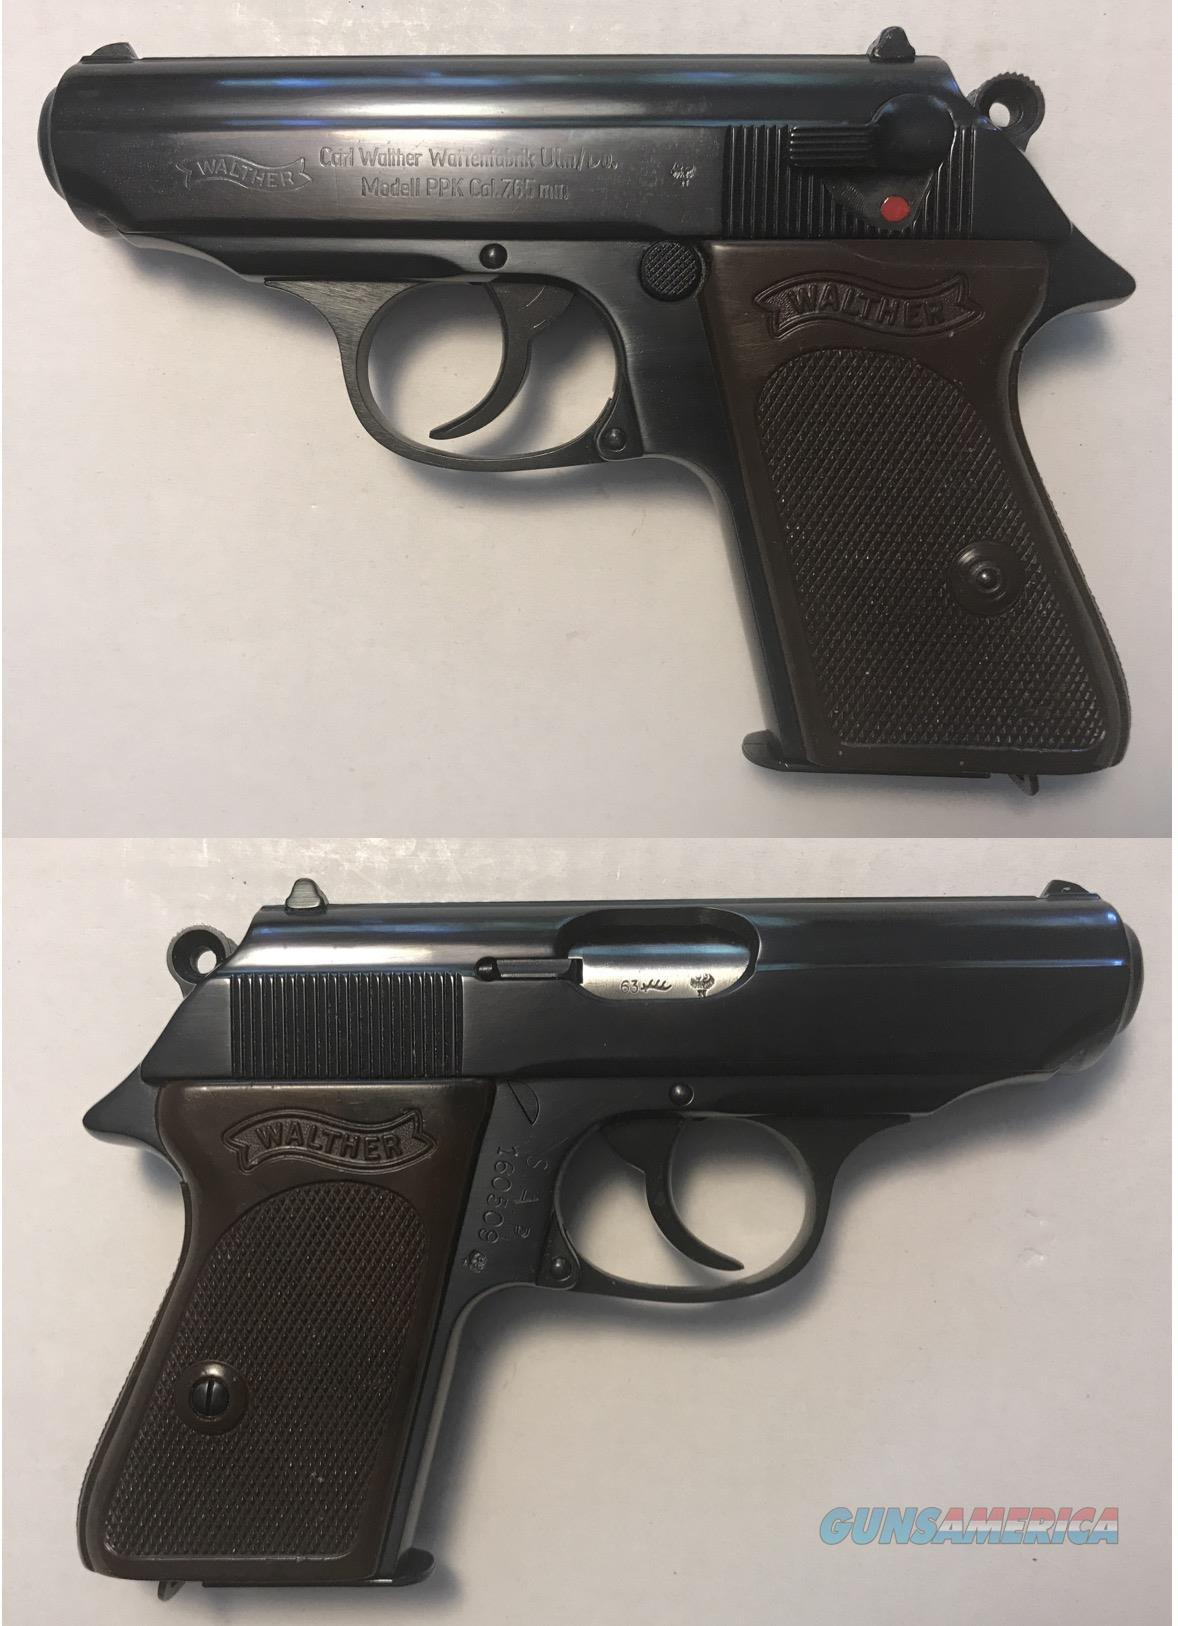 German Walther PPK 7.65mm .32ACP Mfg. 1963 C&R  Guns > Pistols > Walther Pistols > Post WWII > PPK Series